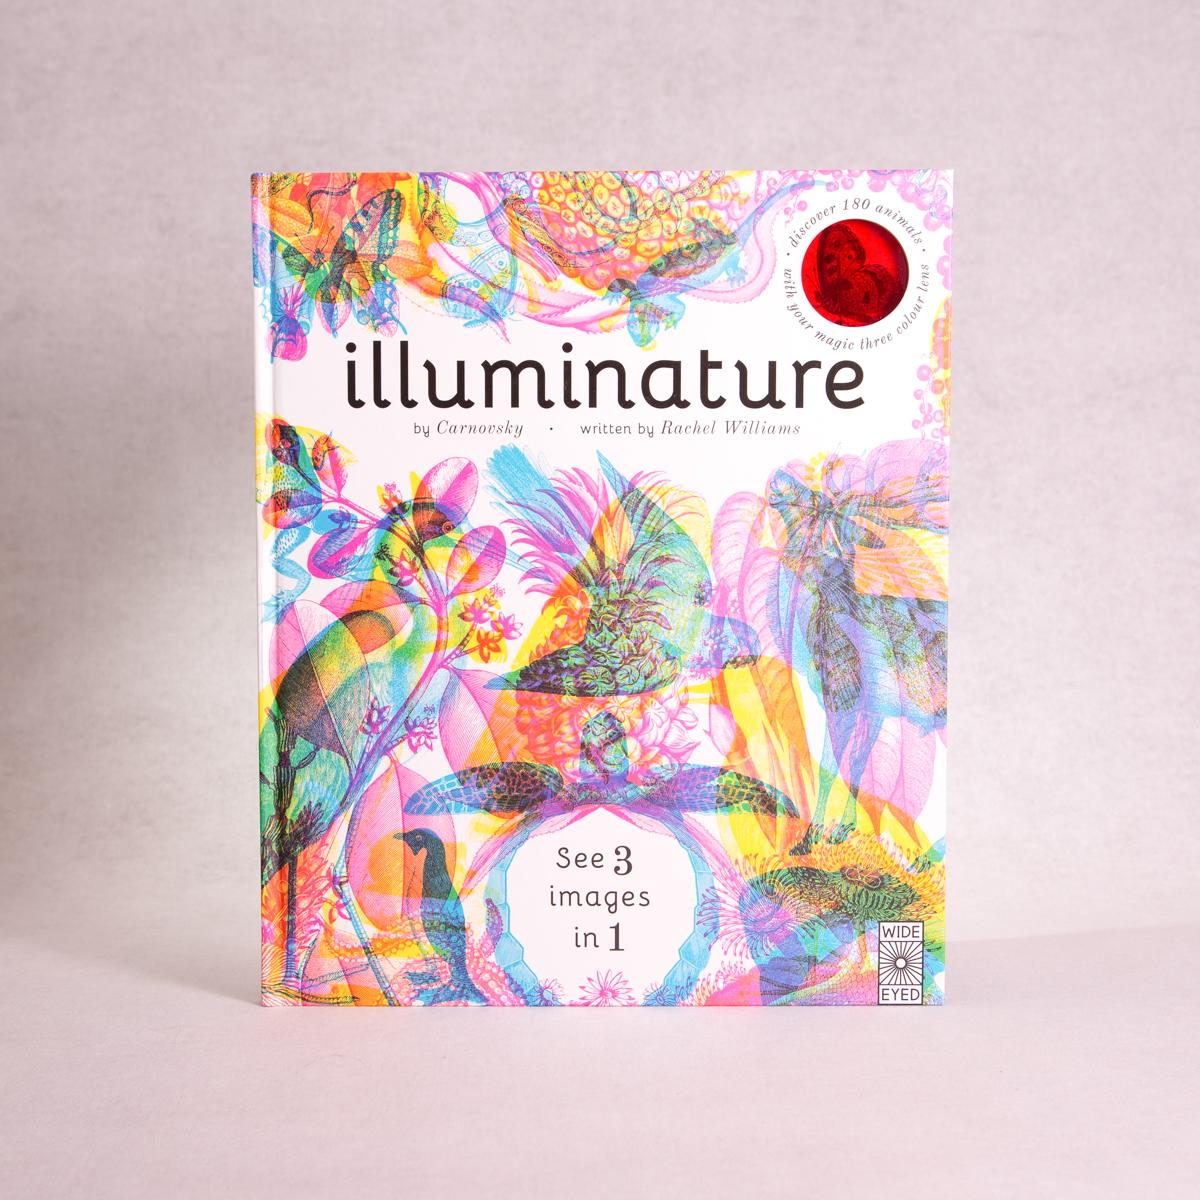 Illuminature | By Rachel Williams & Carnovsky - Book - Throw Some Seeds - Australian gardening gifts and eco products online!